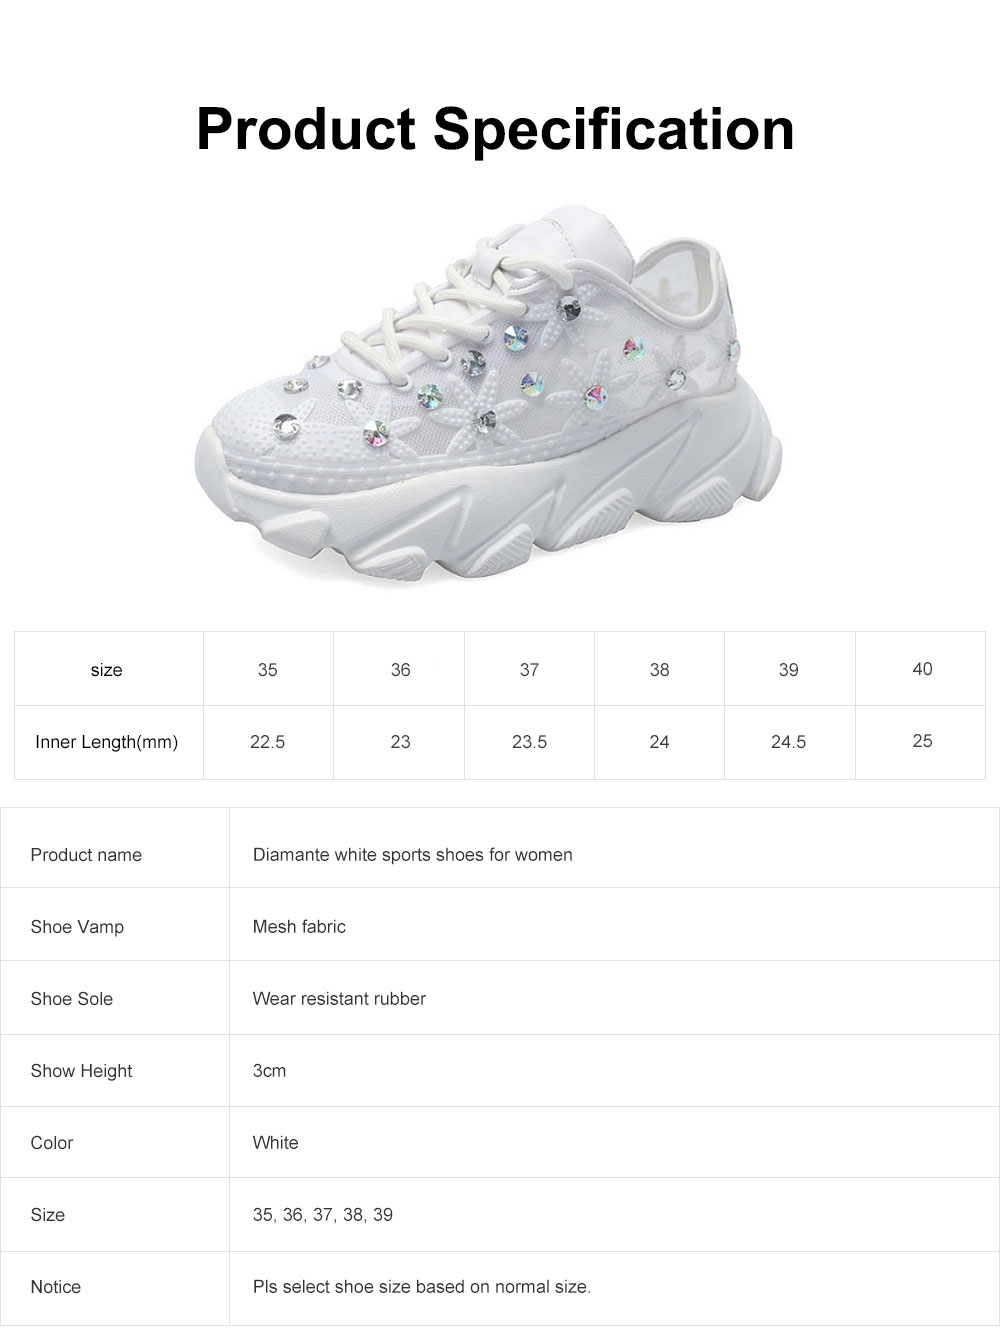 Diamante White Shoes with Grenadine Fabric, Thick Heel Casual Style Sneakers, Thin Gym Shoes 2019 Summer Spring 6